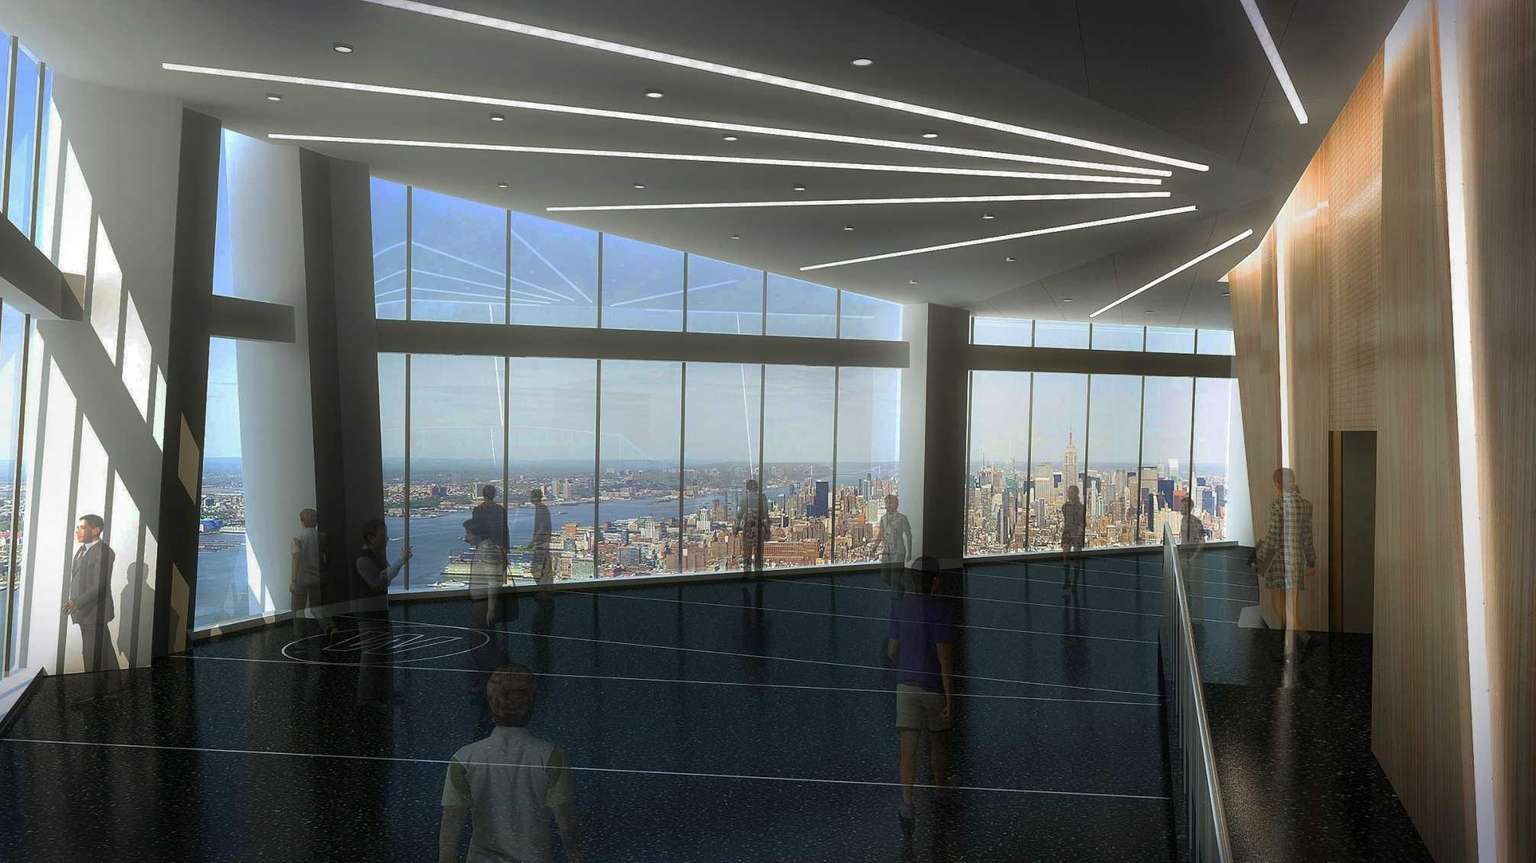 Taking in the view at One World Observatory